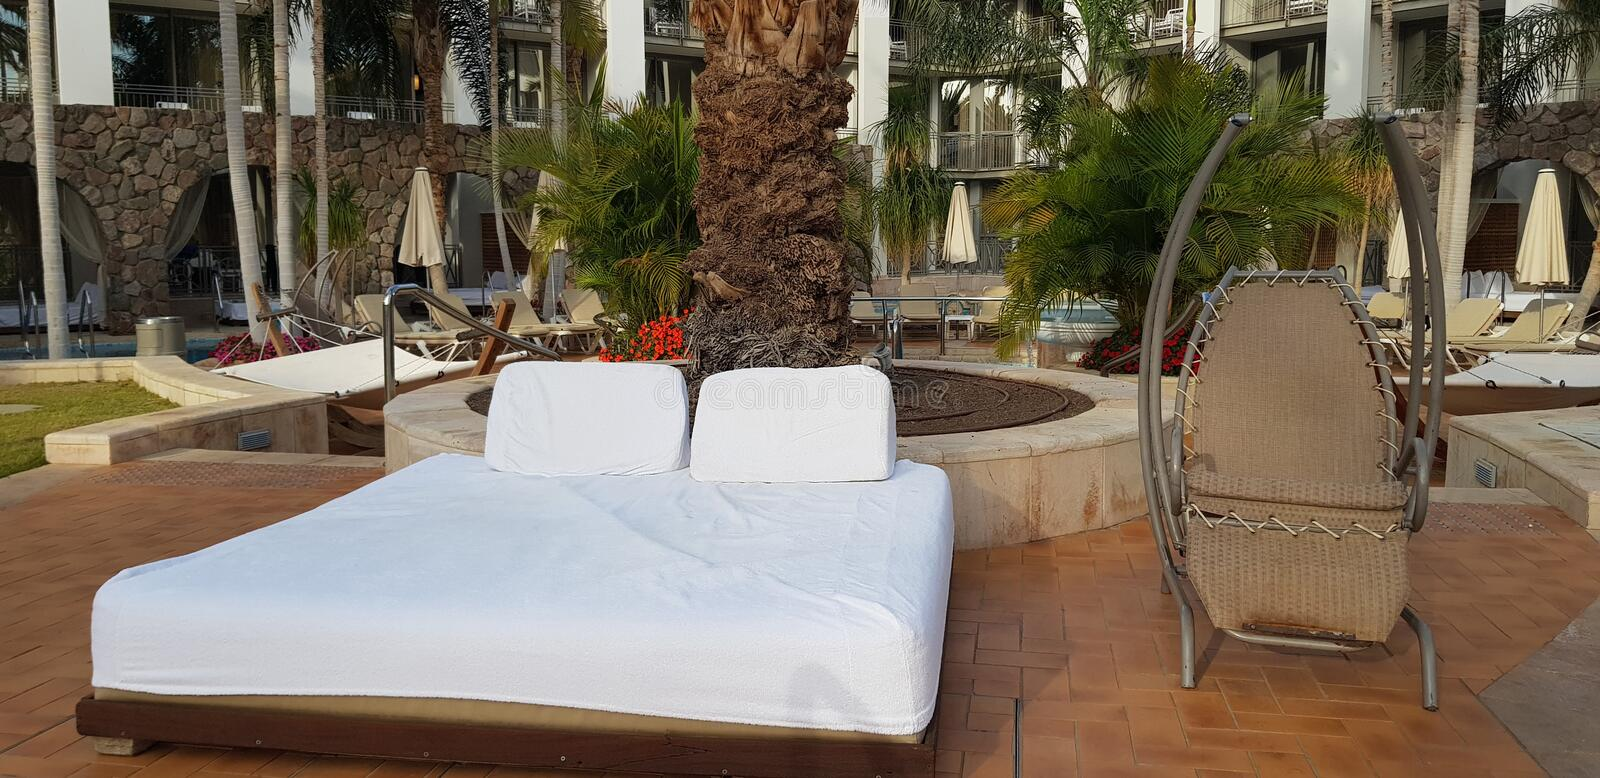 Bed for tan and rest with white mattress near a rocking chair stay empty in the hotel garden stock images